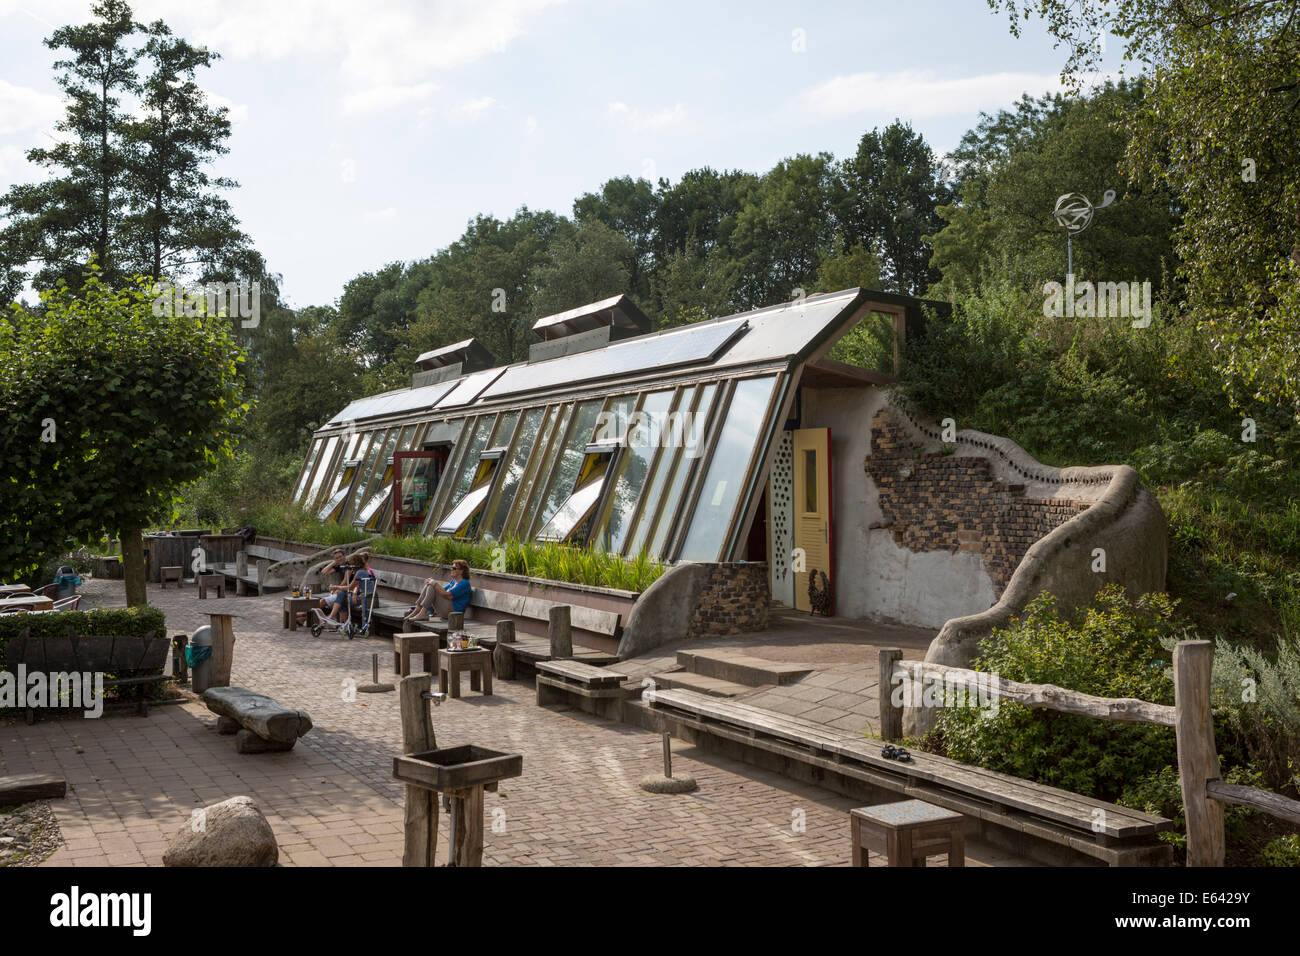 First Dutch earthship sustainable building at Doepark Nooterhof in Zwolle (Netherlands) - Stock Image